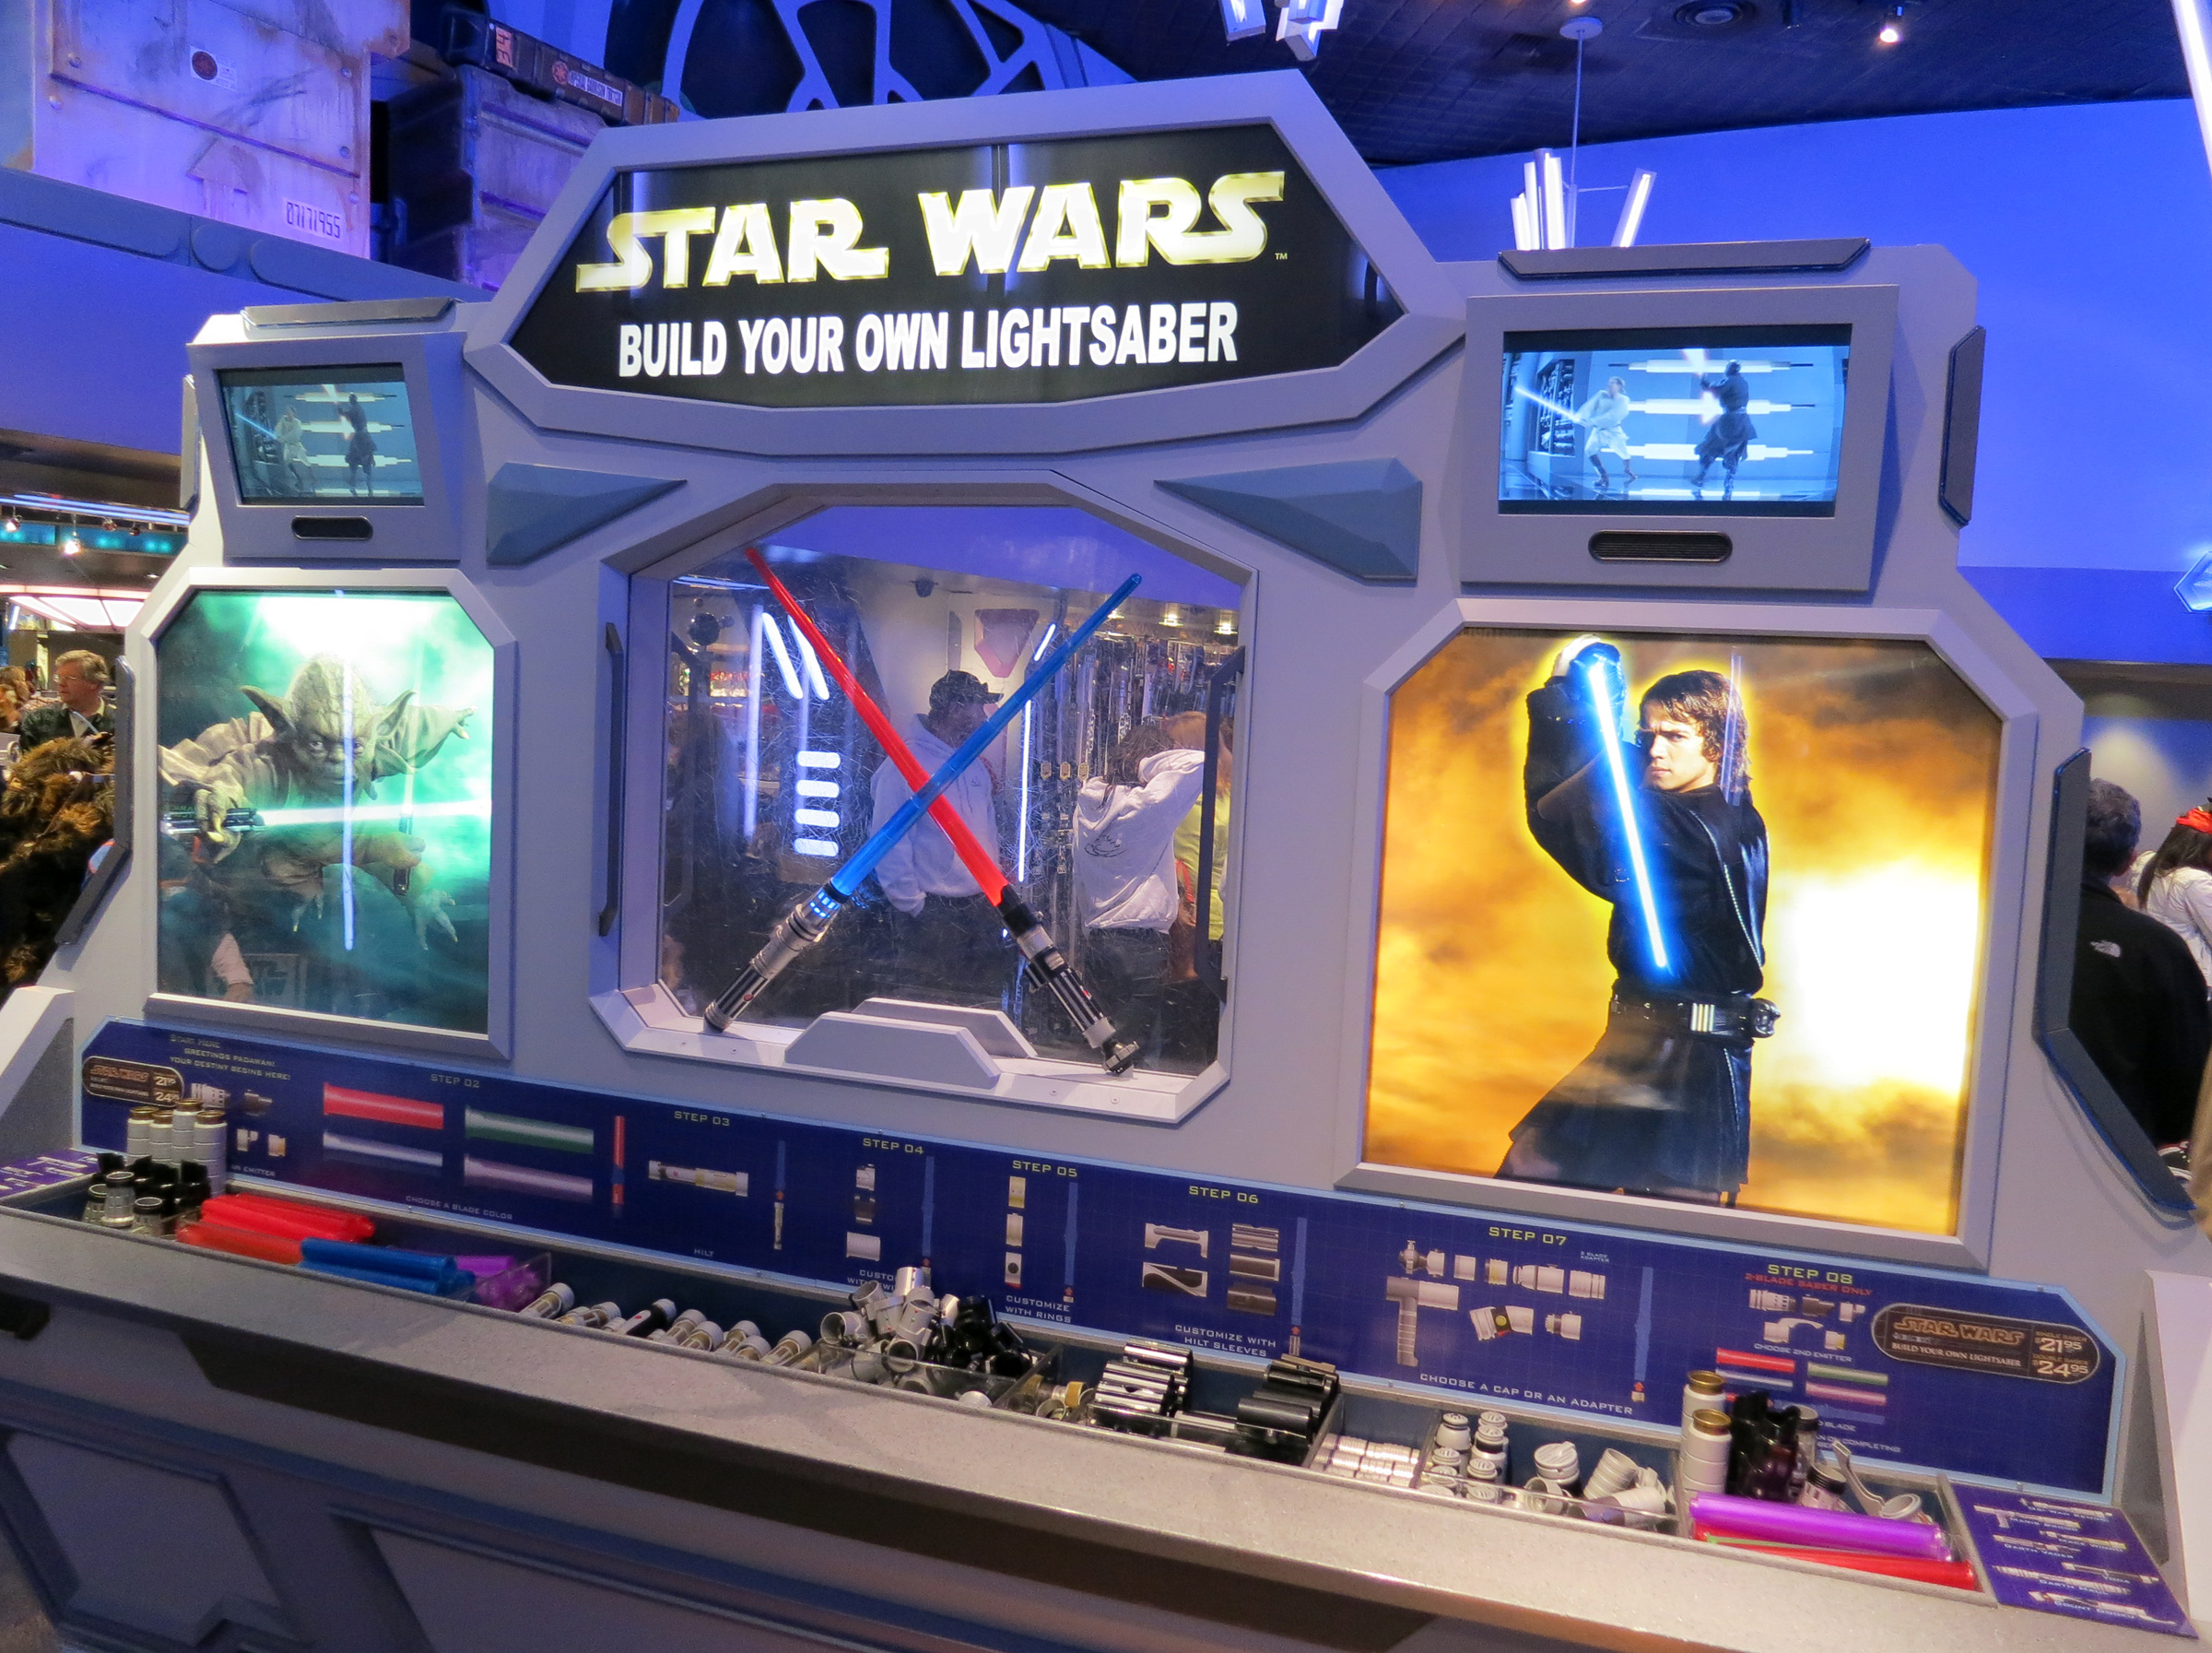 Star Wars Build Your Own Lightsaber Kit